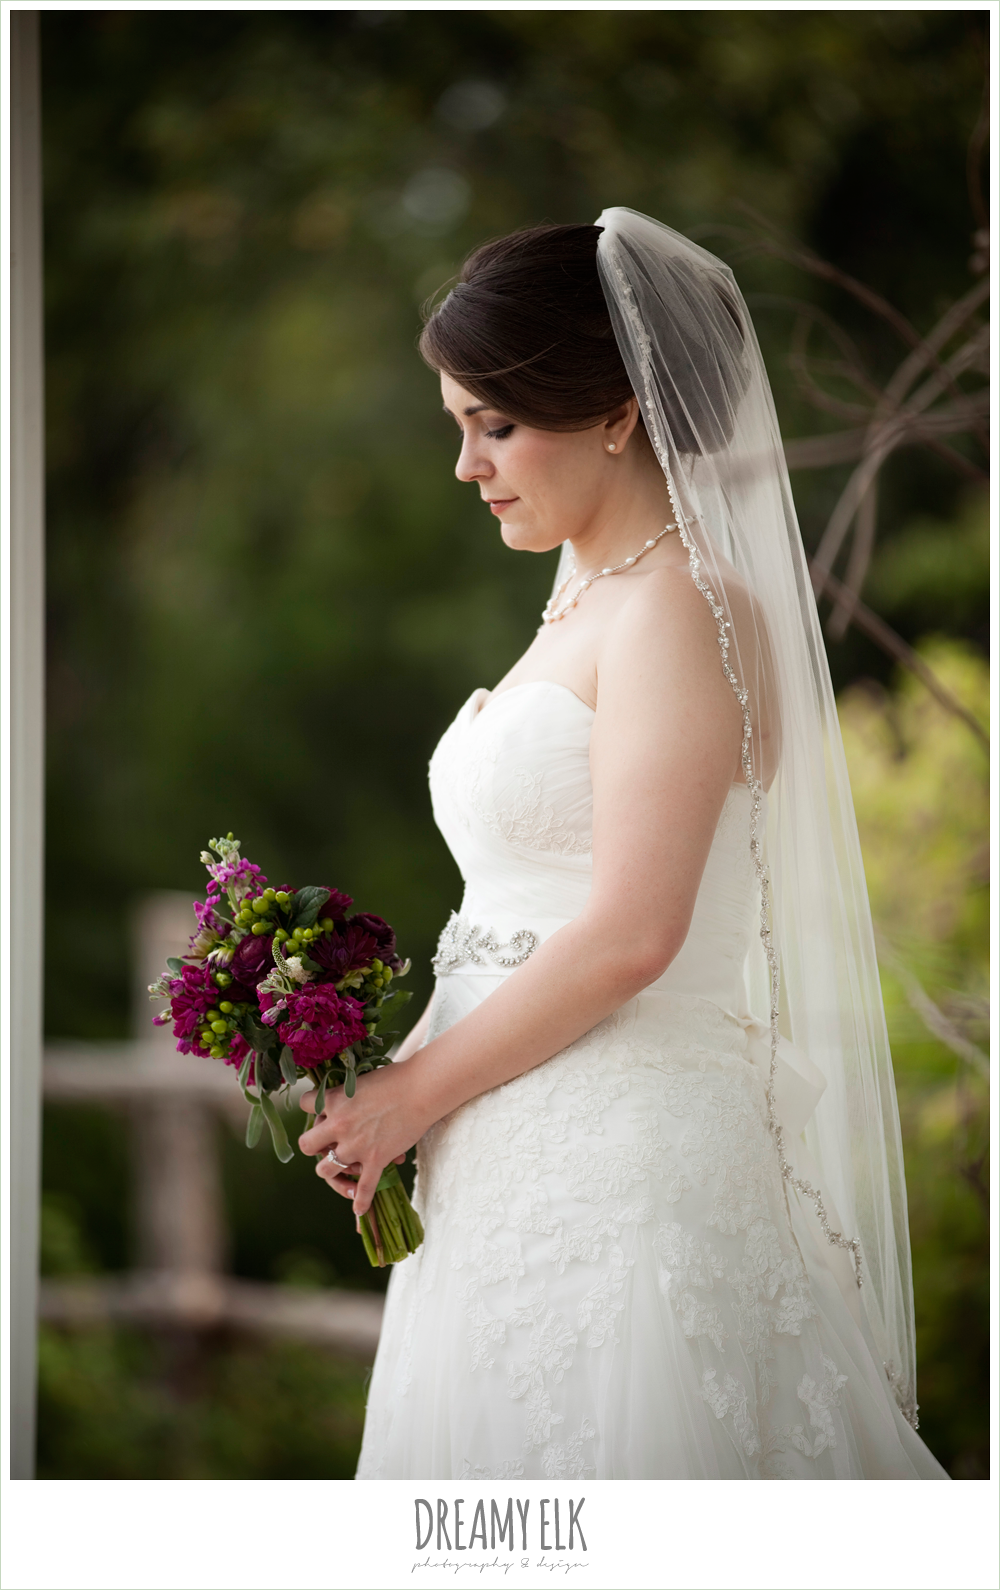 sweetheart strapless lace wedding dress, beaded veil, green and purple wedding bouquet